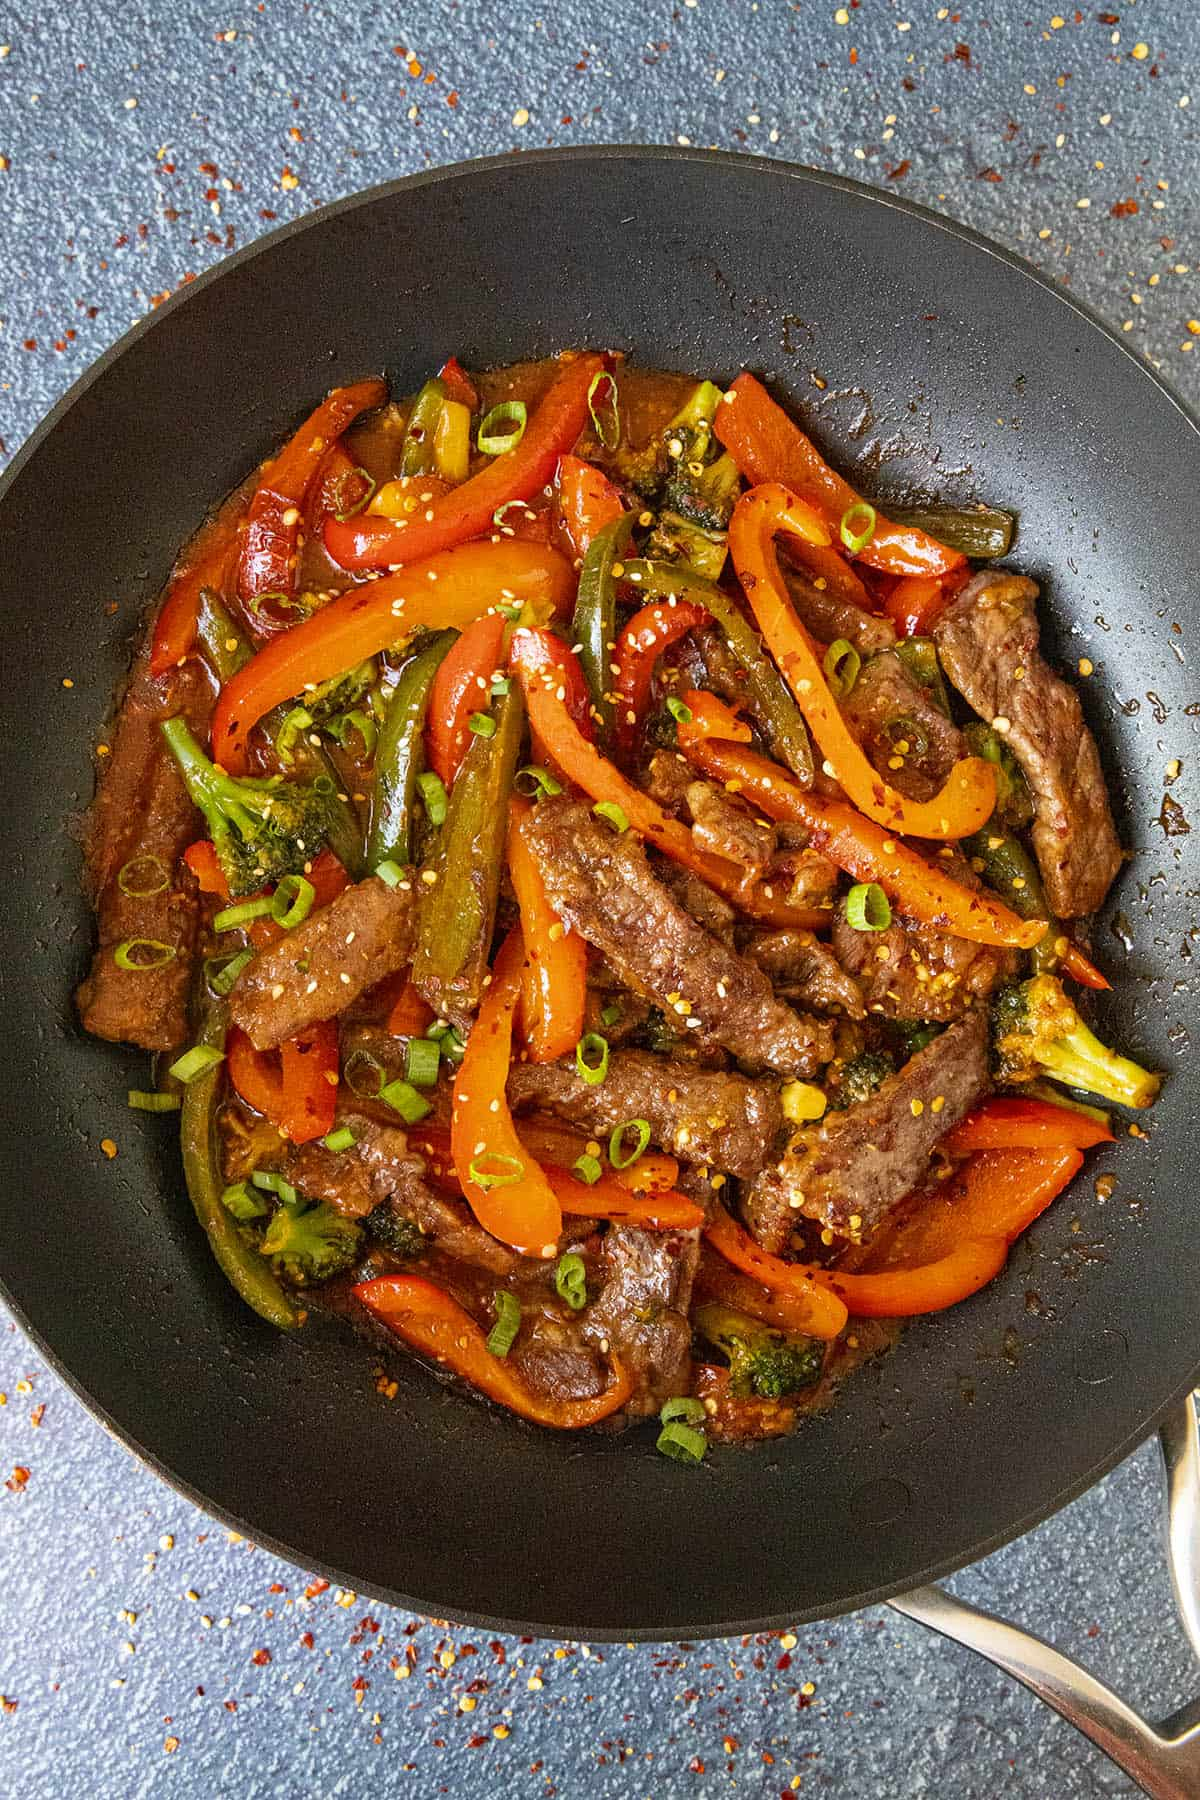 Spicy Beef Stir Fry in a pan